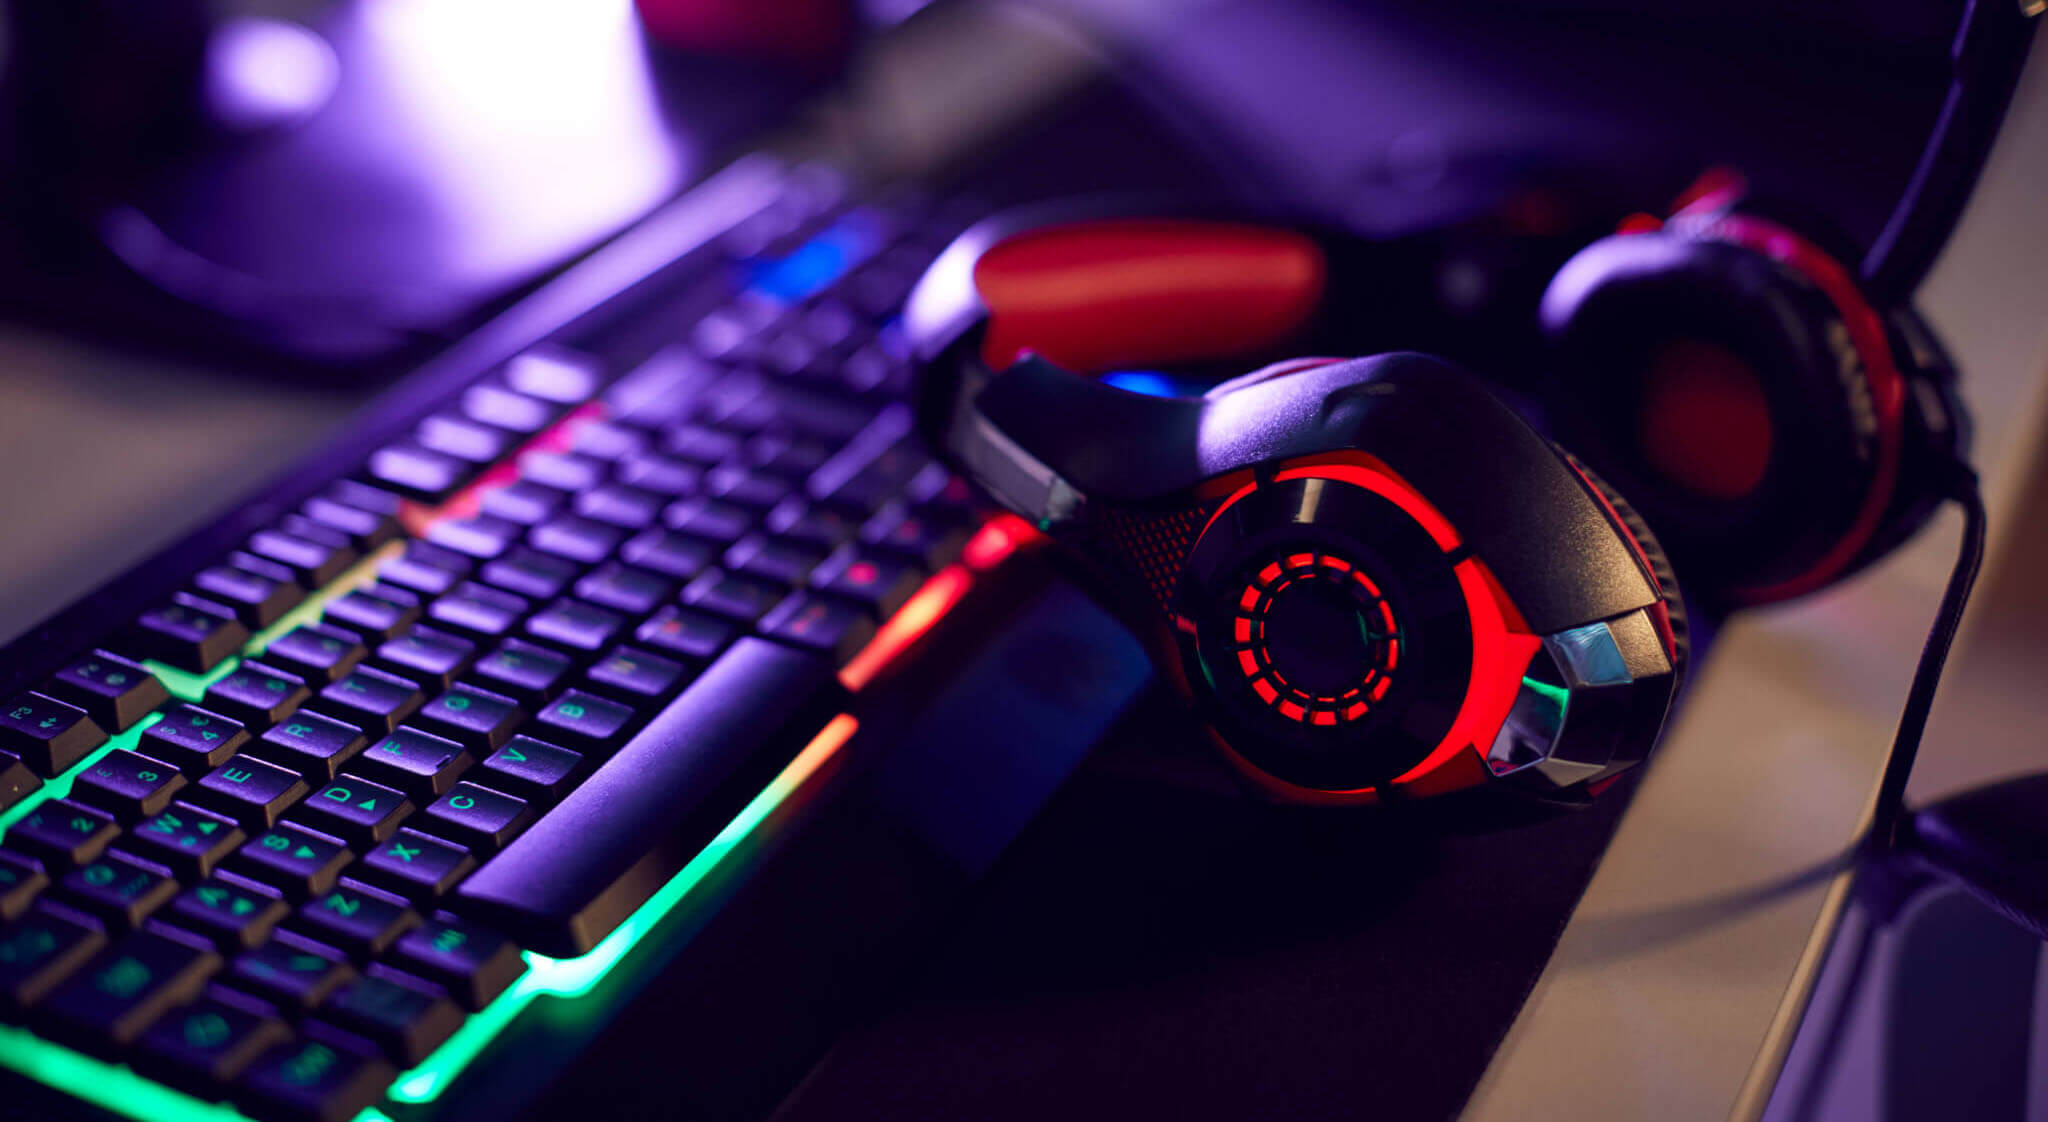 RGB gaming keyboard and headset on a desktop